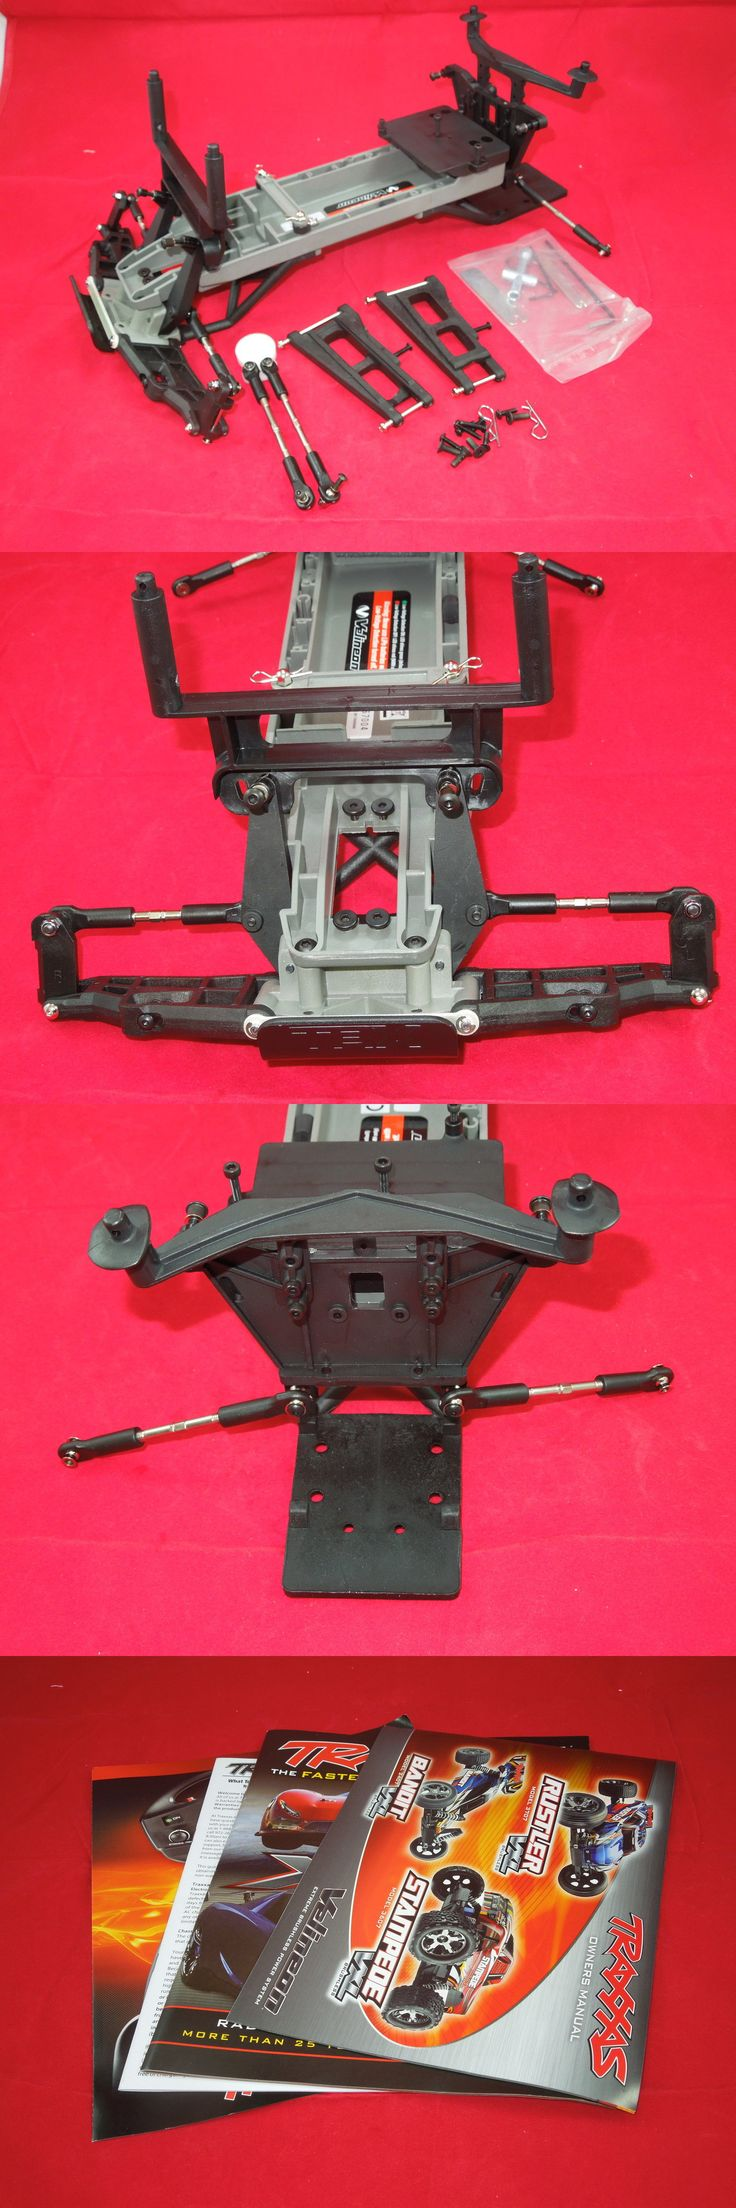 Chassis Plates Frames and Kits 182198: Traxxas Stampede Vxl Brushless Chassis Parts Lot + Tools Roller Rolling Xl-5 -> BUY IT NOW ONLY: $44.99 on eBay!